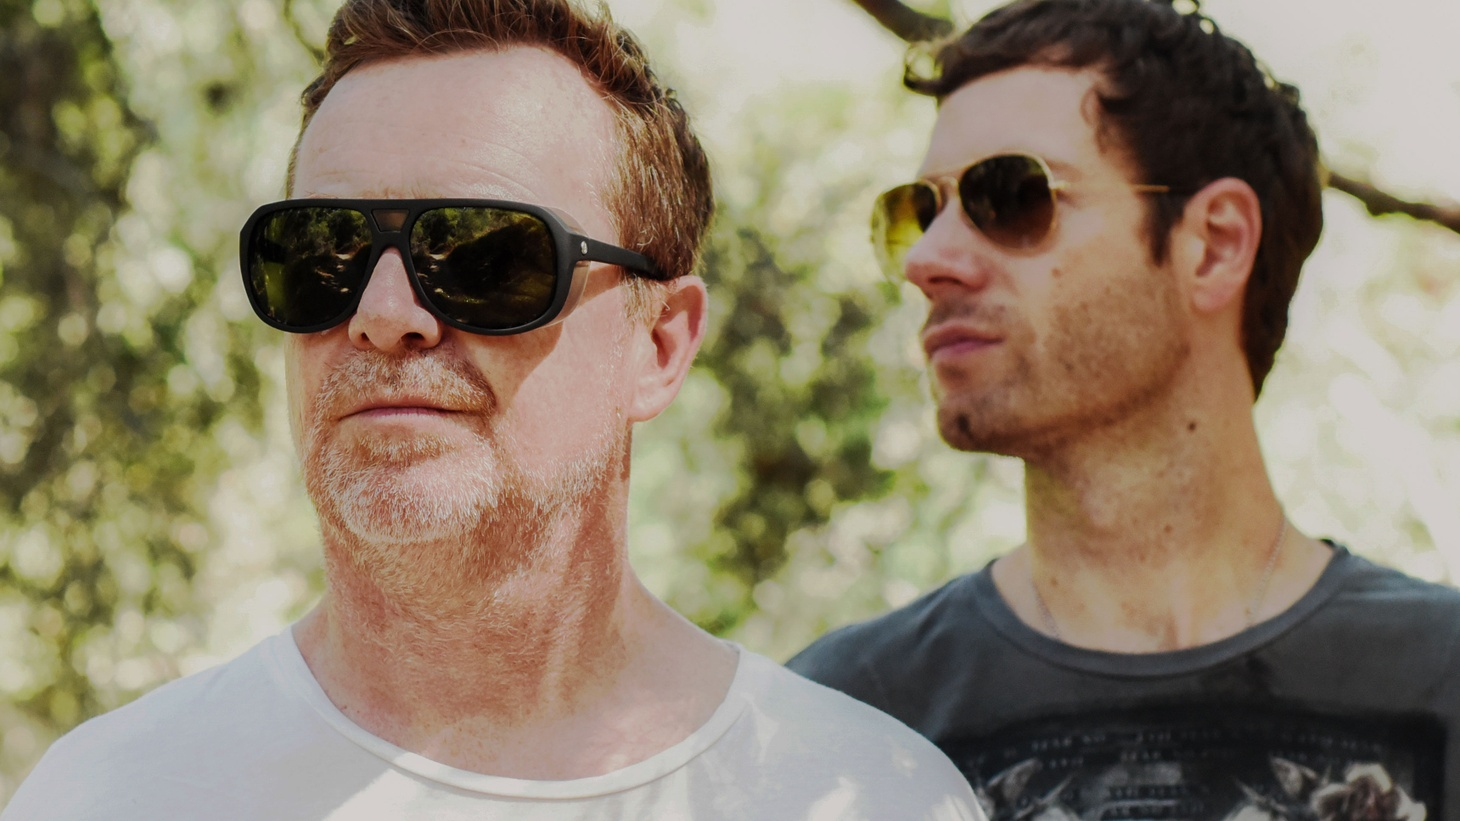 Progressive house legends Way Out West are comprised of UK lads, Nick Warren and Jody Wisternoff. Known for crackling with inventive energy through more than 25 years of producing and performing together.We're thrilled to welcome Warren and Wisternoff to Metropolis with an exclusive mix.